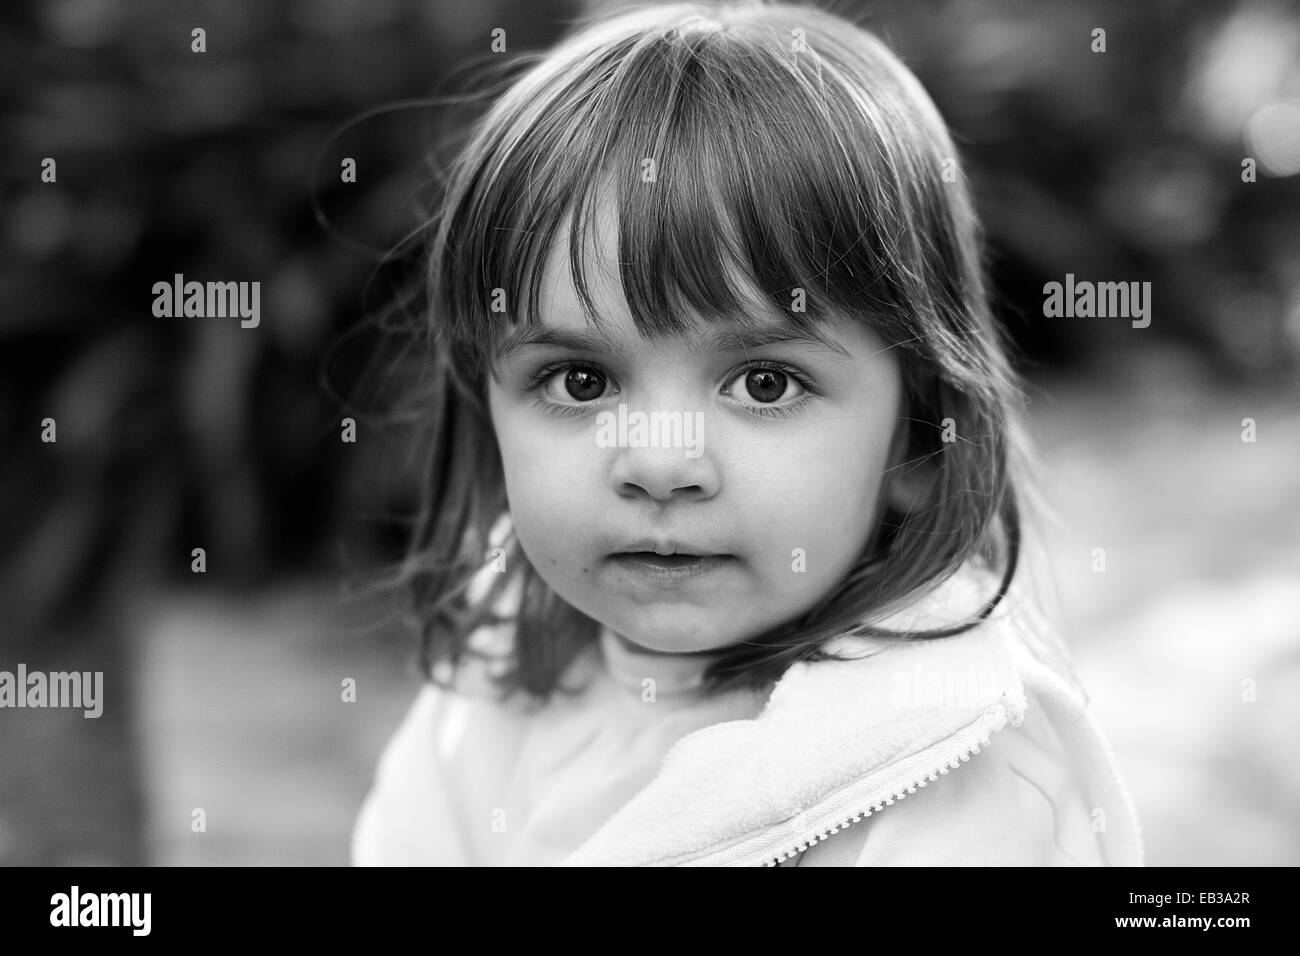 Argentina, Buenos Aires, Portrait of girl (2-3) looking at camera Stock Photo